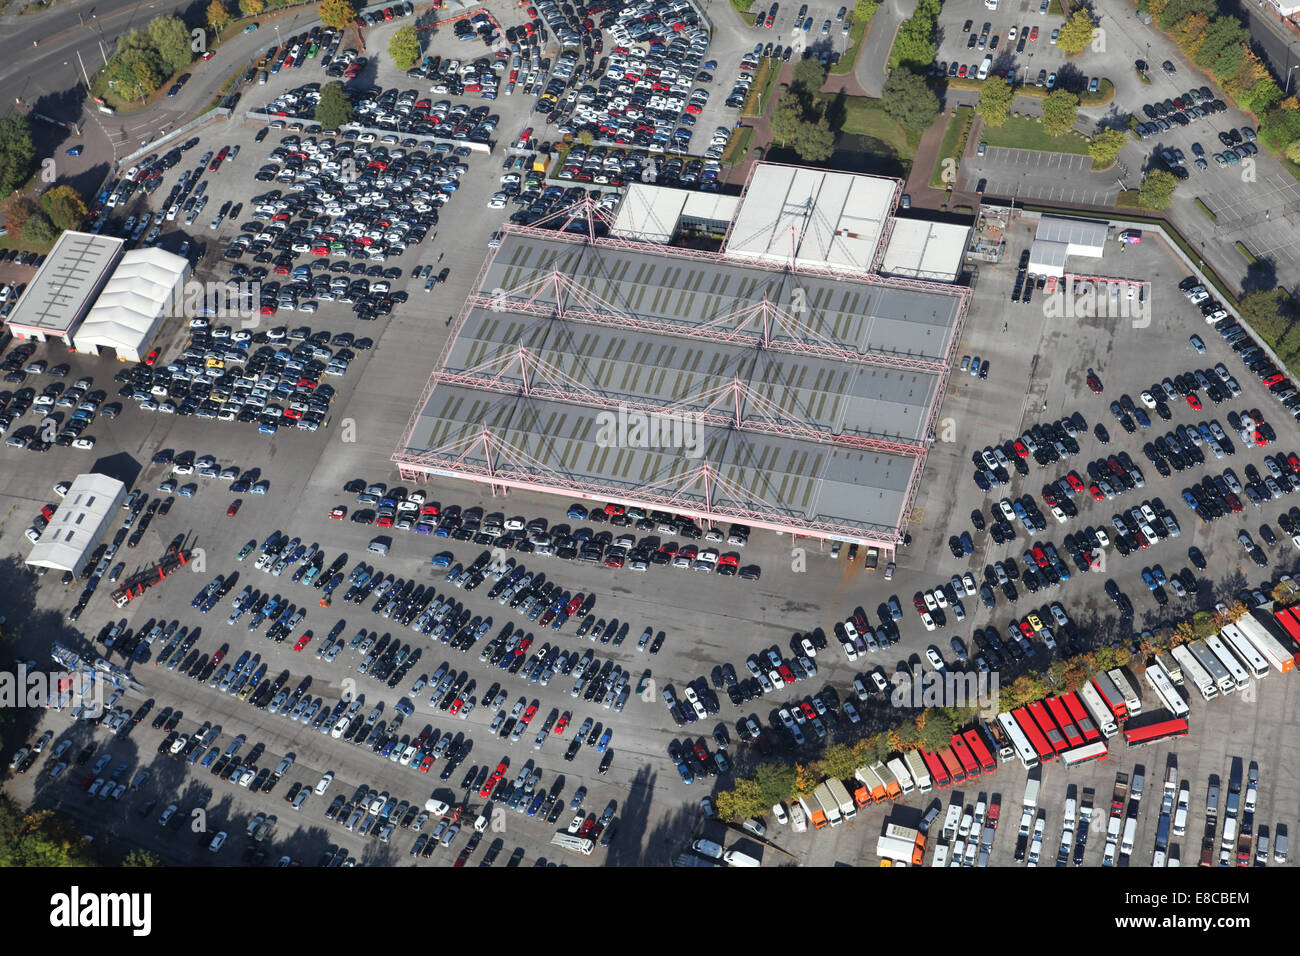 Car Auctions High Resolution Stock Photography And Images Alamy